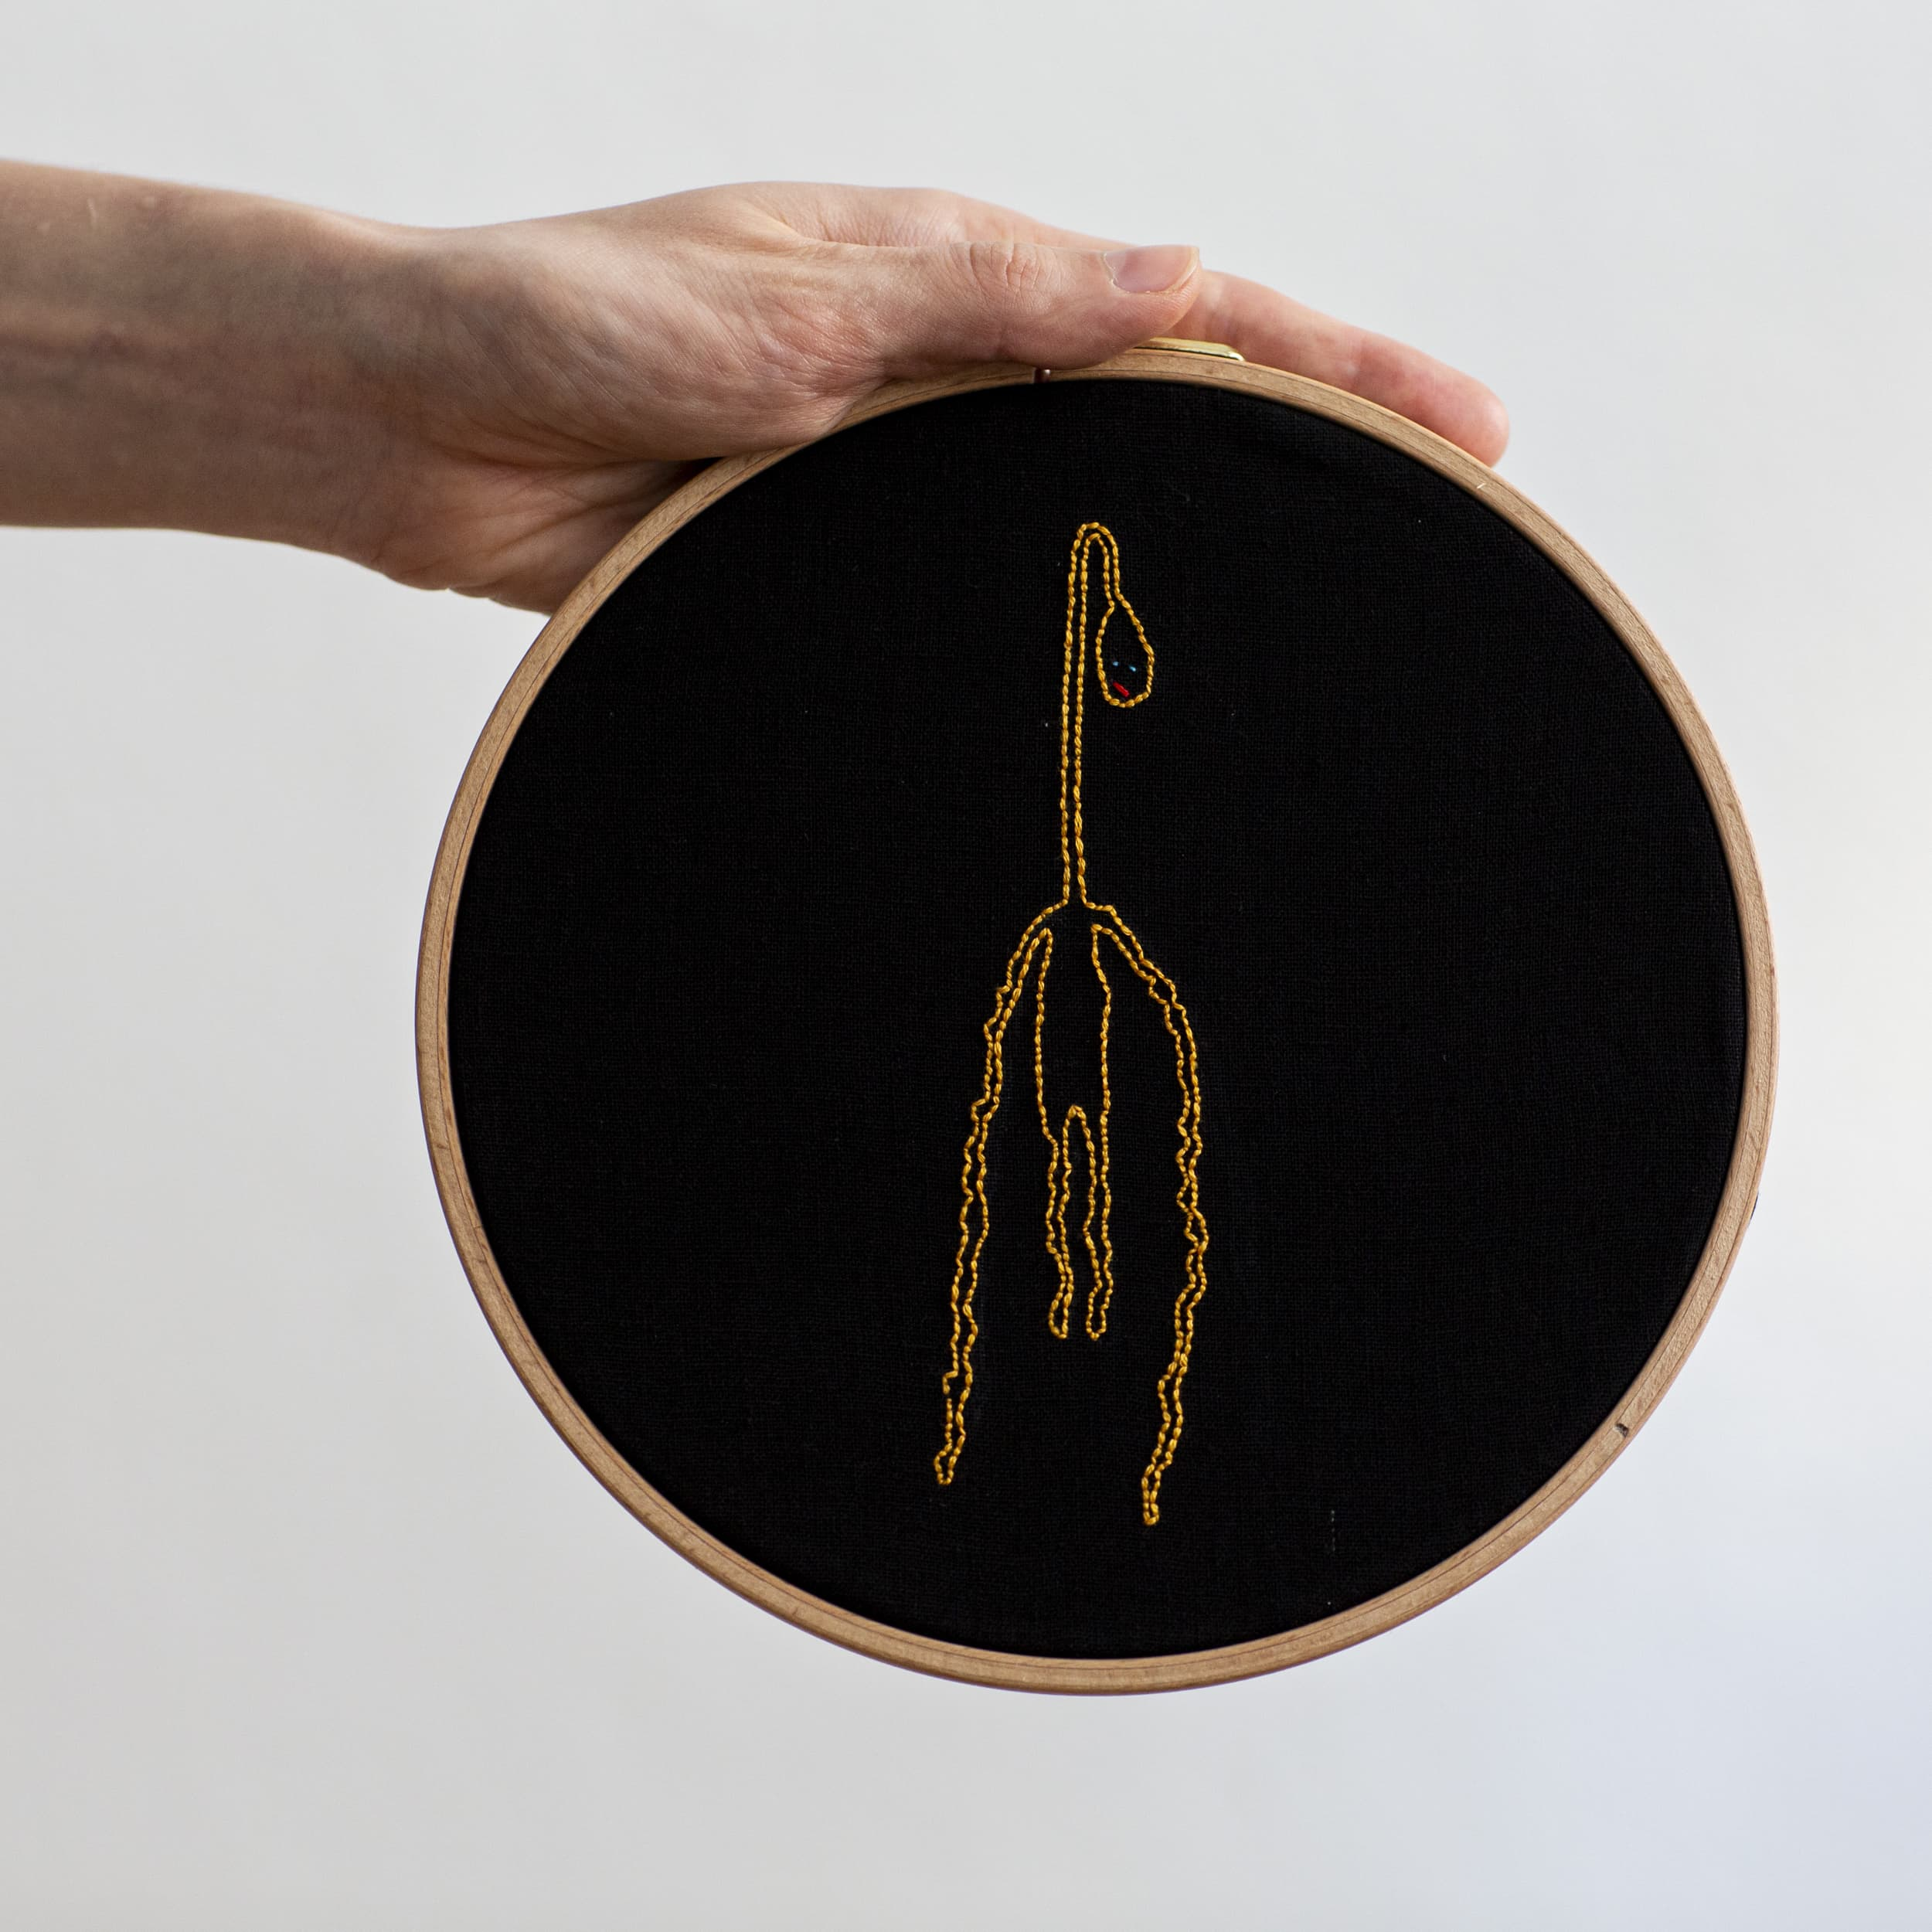 embroidery, Monika Deimling, anxiety